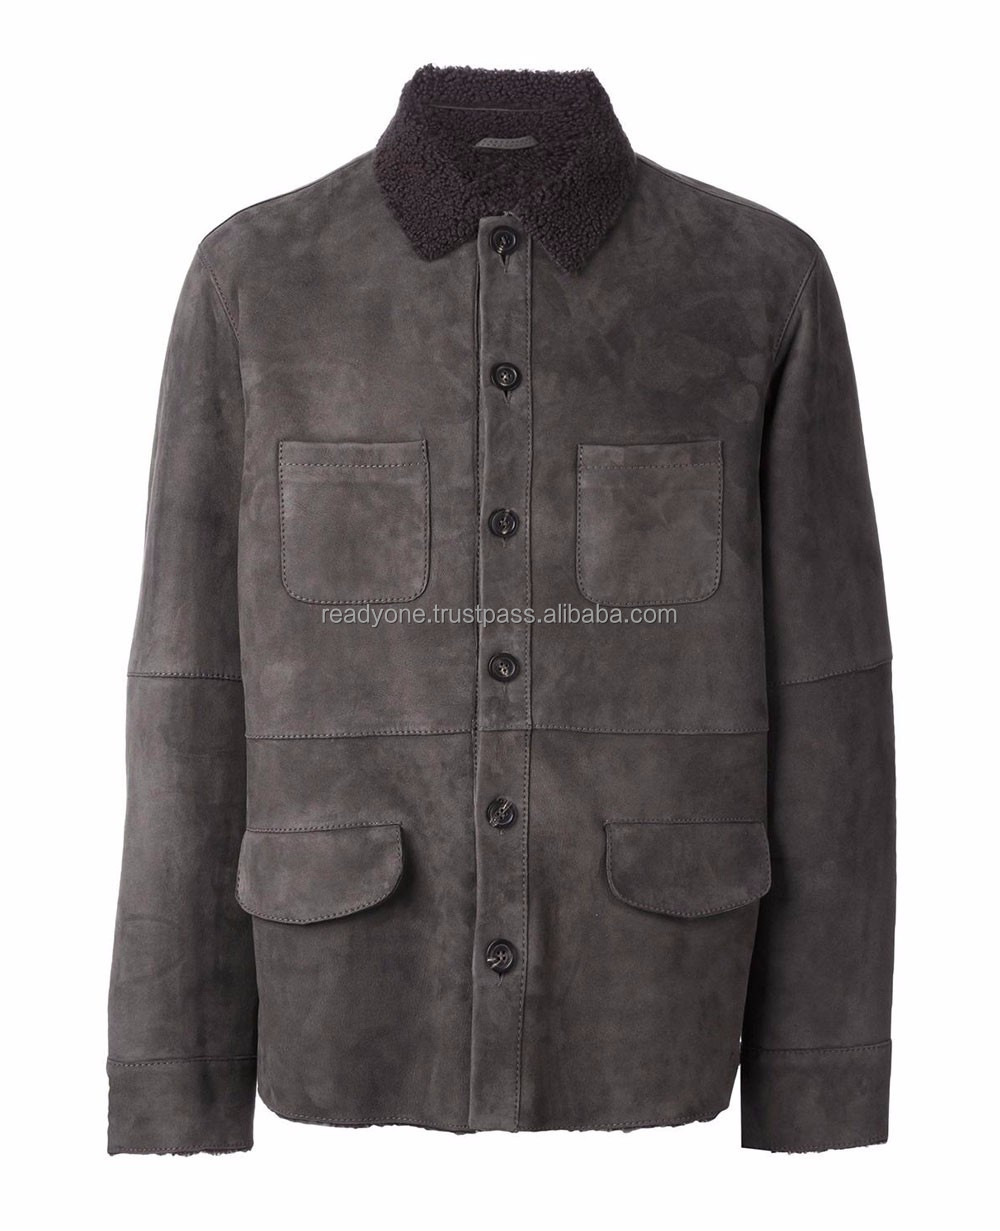 Battery Heated Waterproof Men's Suede Leather Jackets Prices In Pakistan